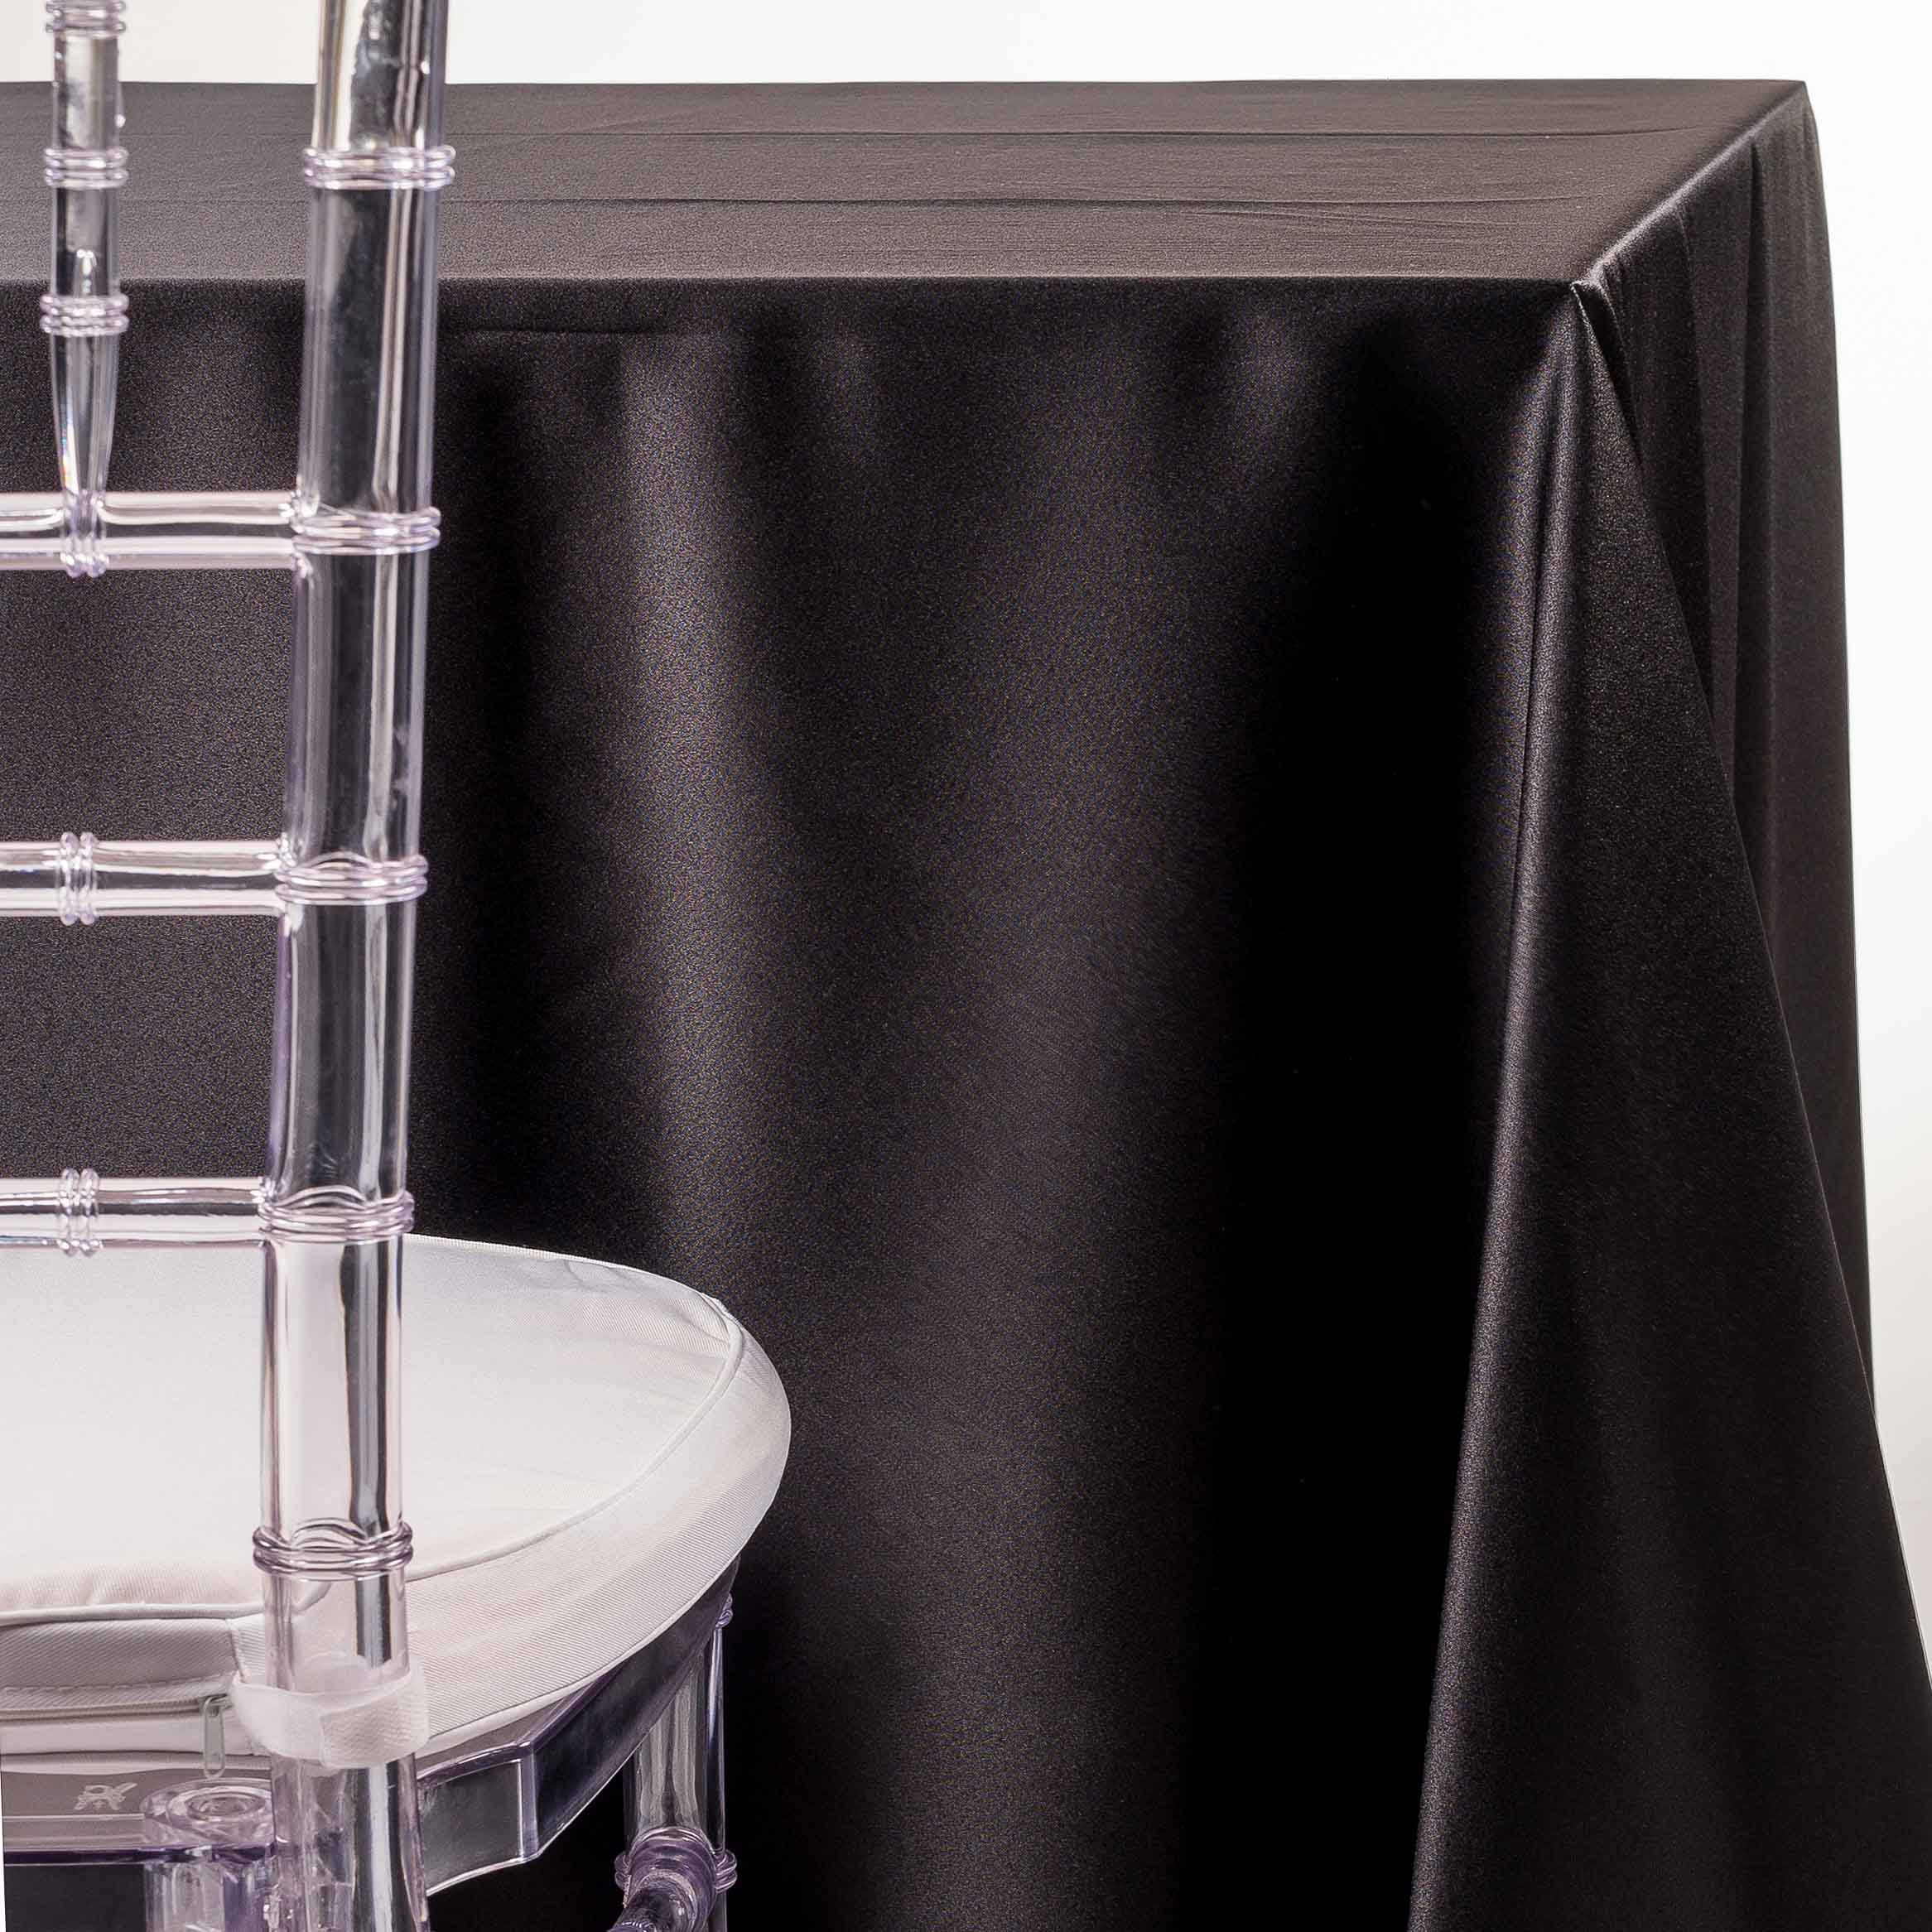 black satin Tablecloth for wedding and party rentals